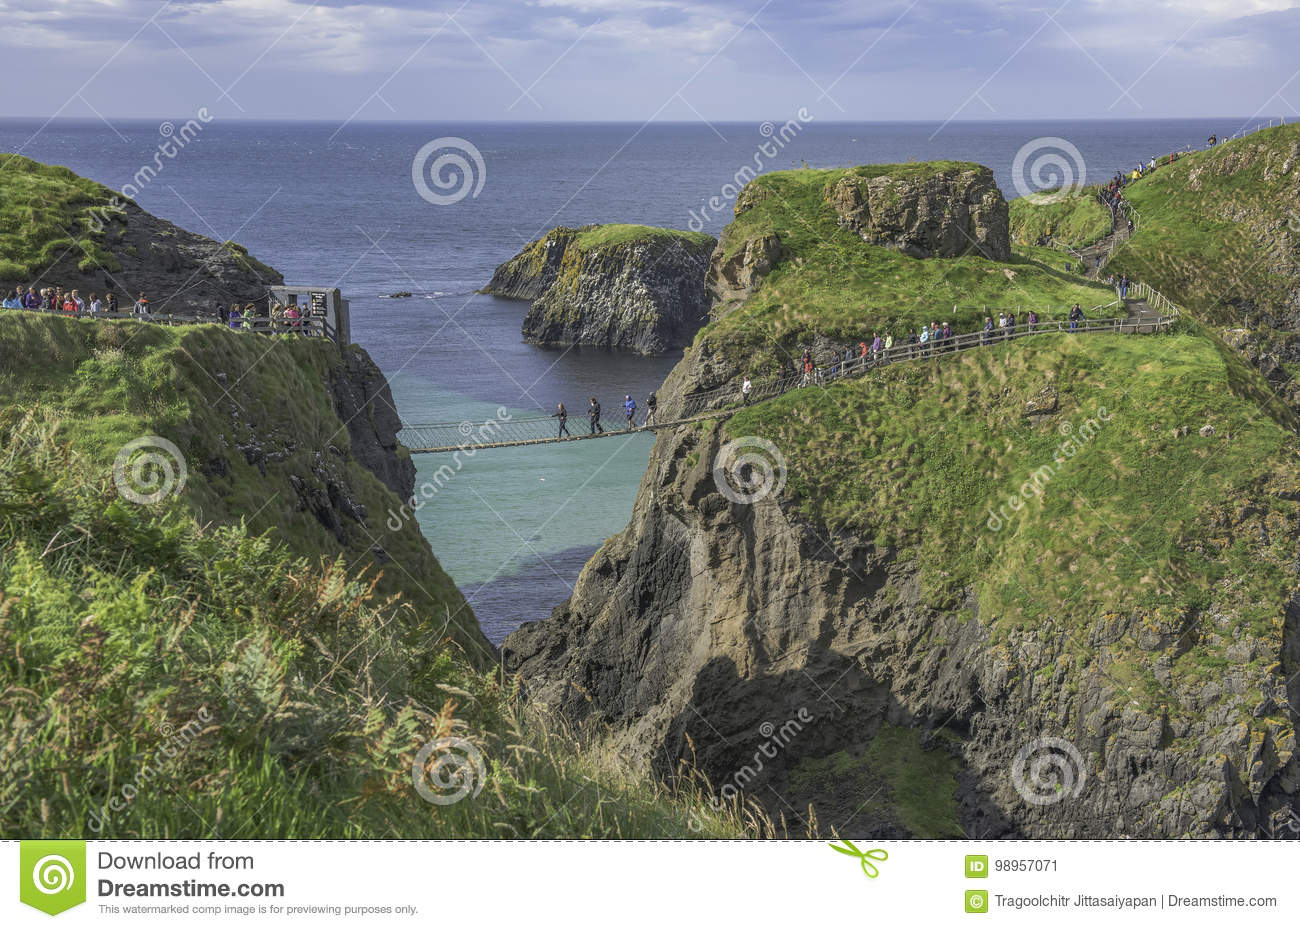 Carrick-a-Rede Rope Bridge a famous rope bridge near Ballintoy in County Antrim in Northern Ireland